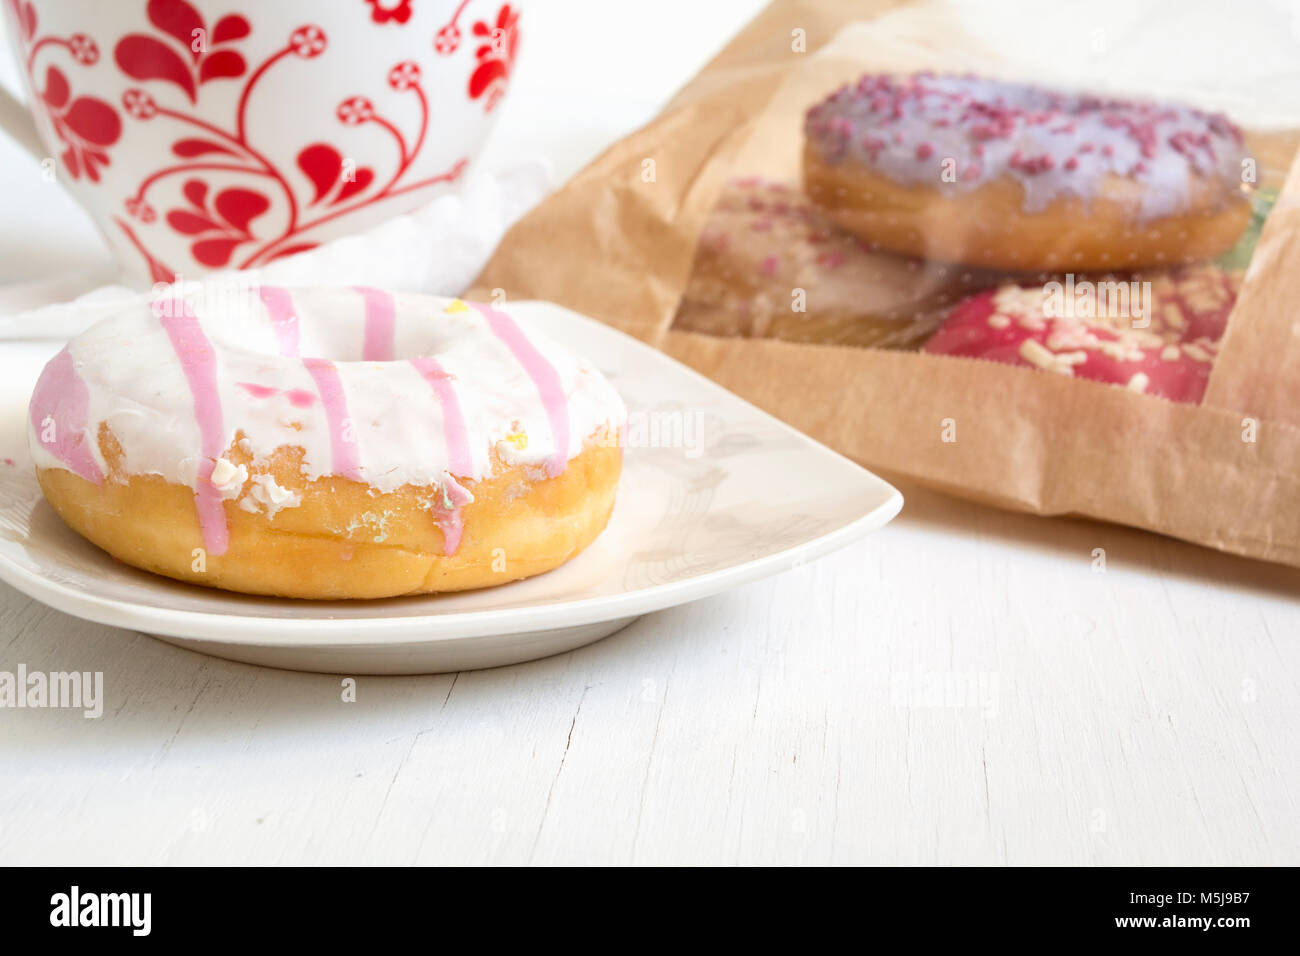 Donut on plate. Bag full of doughnuts and cup of tea. - Stock Image